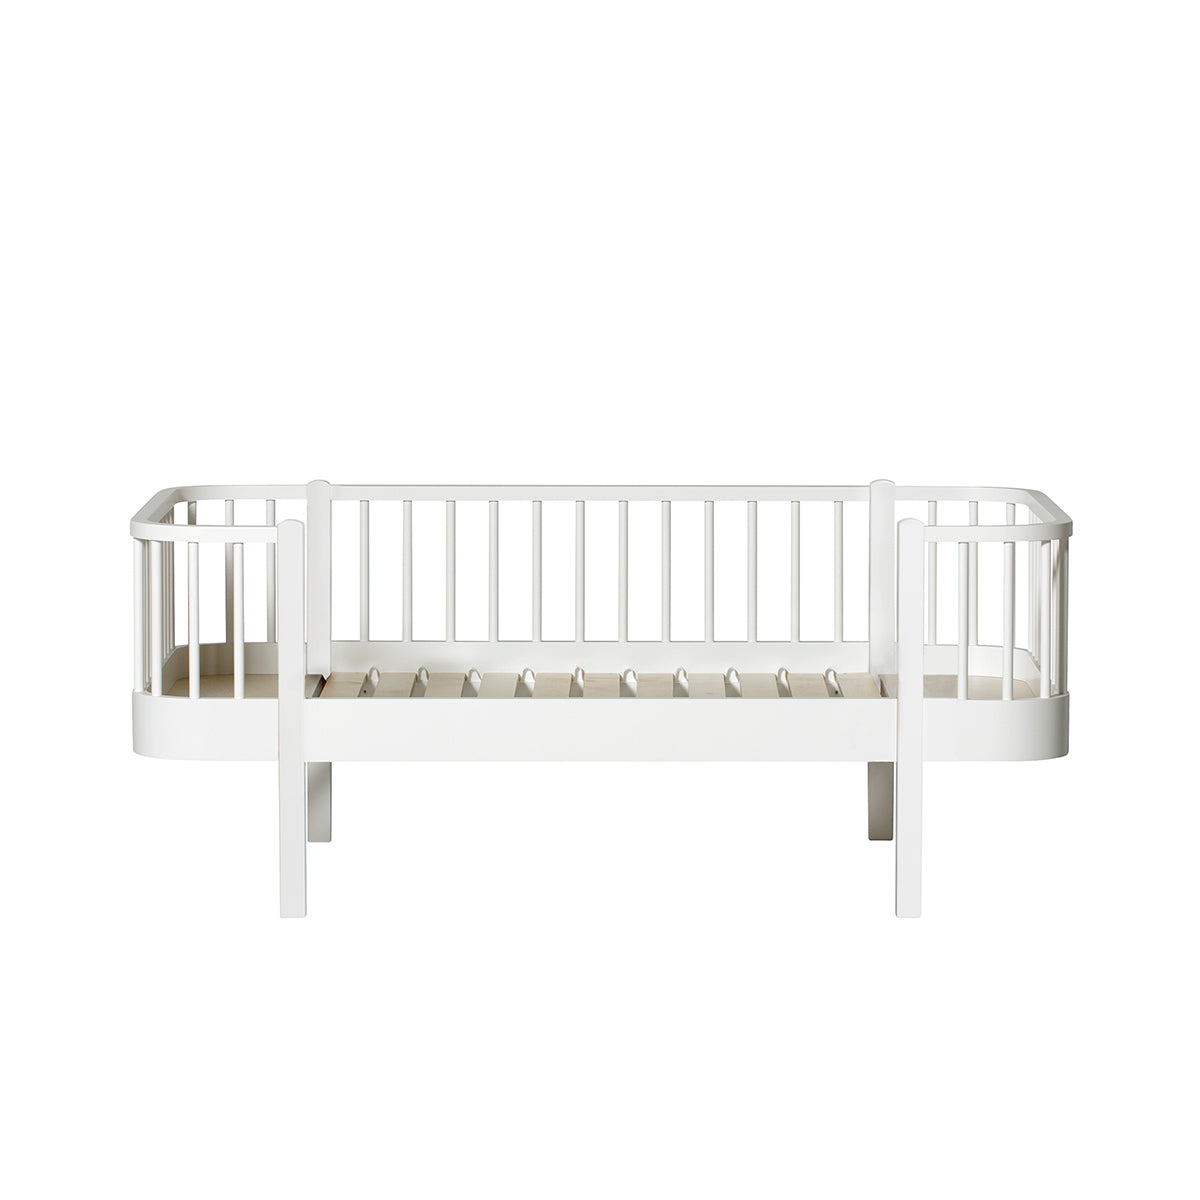 Oliver Furniture Wood Junior Bettsofa, 90 x 160cm, weiss